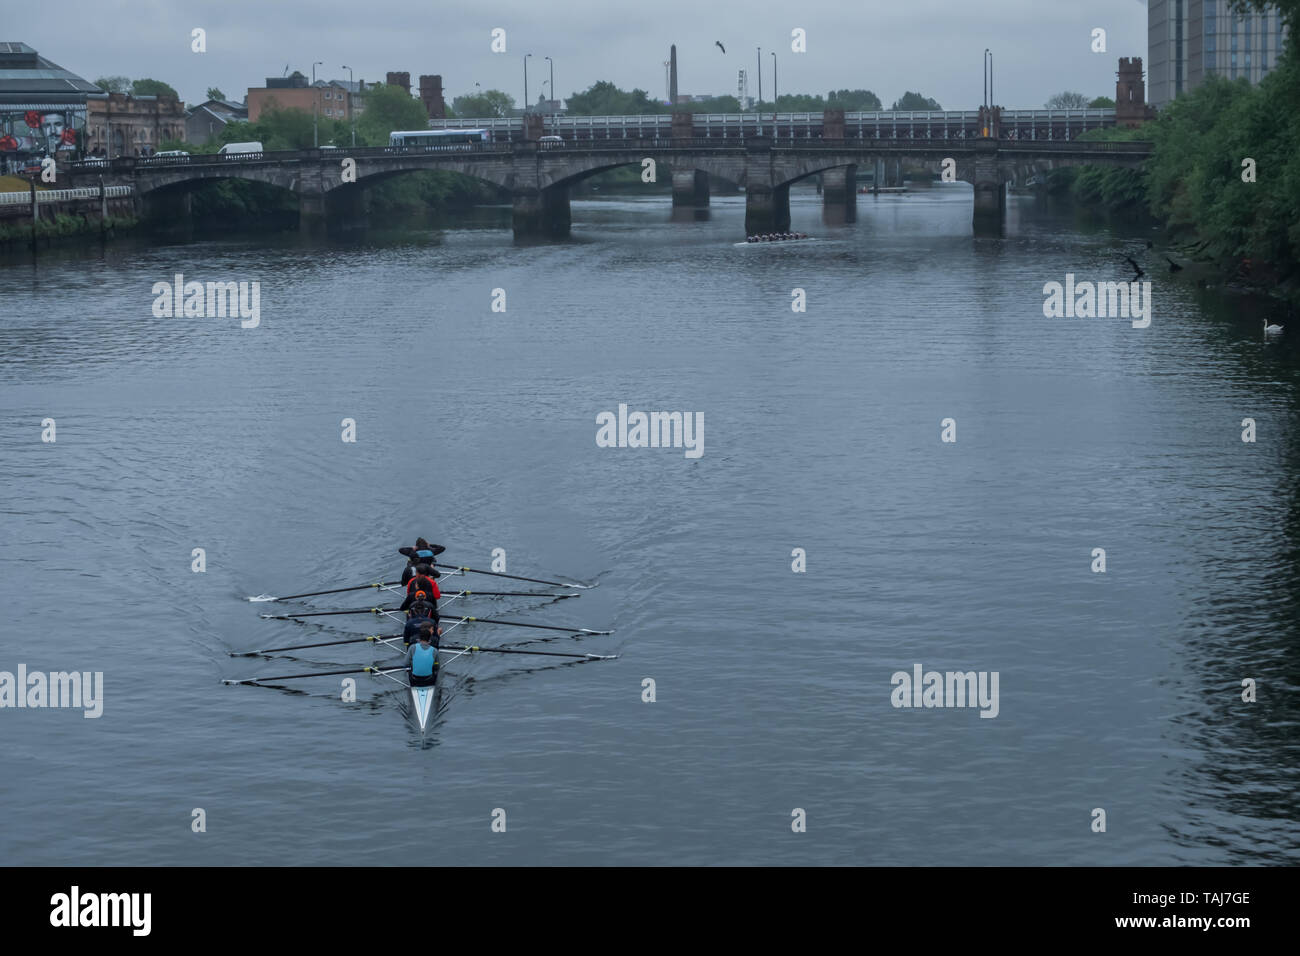 Glasgow, Scotland, UK. 25th May, 2019. The Scottish Boat Race is an annual rowing race over 2km on The River Clyde between the University of Glasgow Boat Club and the University of Edinburgh Boat Club. The race starts at the South Portland Street Suspension Bridge and finishes at the Glasgow Science Centre Tower. The event consists of six different races:  a mixed graduate, a men's novice & second eight, a women's novice & second eight, men's first eight, women's first eight and an ergometer team race. Credit: Skully/Alamy Live News Credit: Skully/Alamy Live News Stock Photo